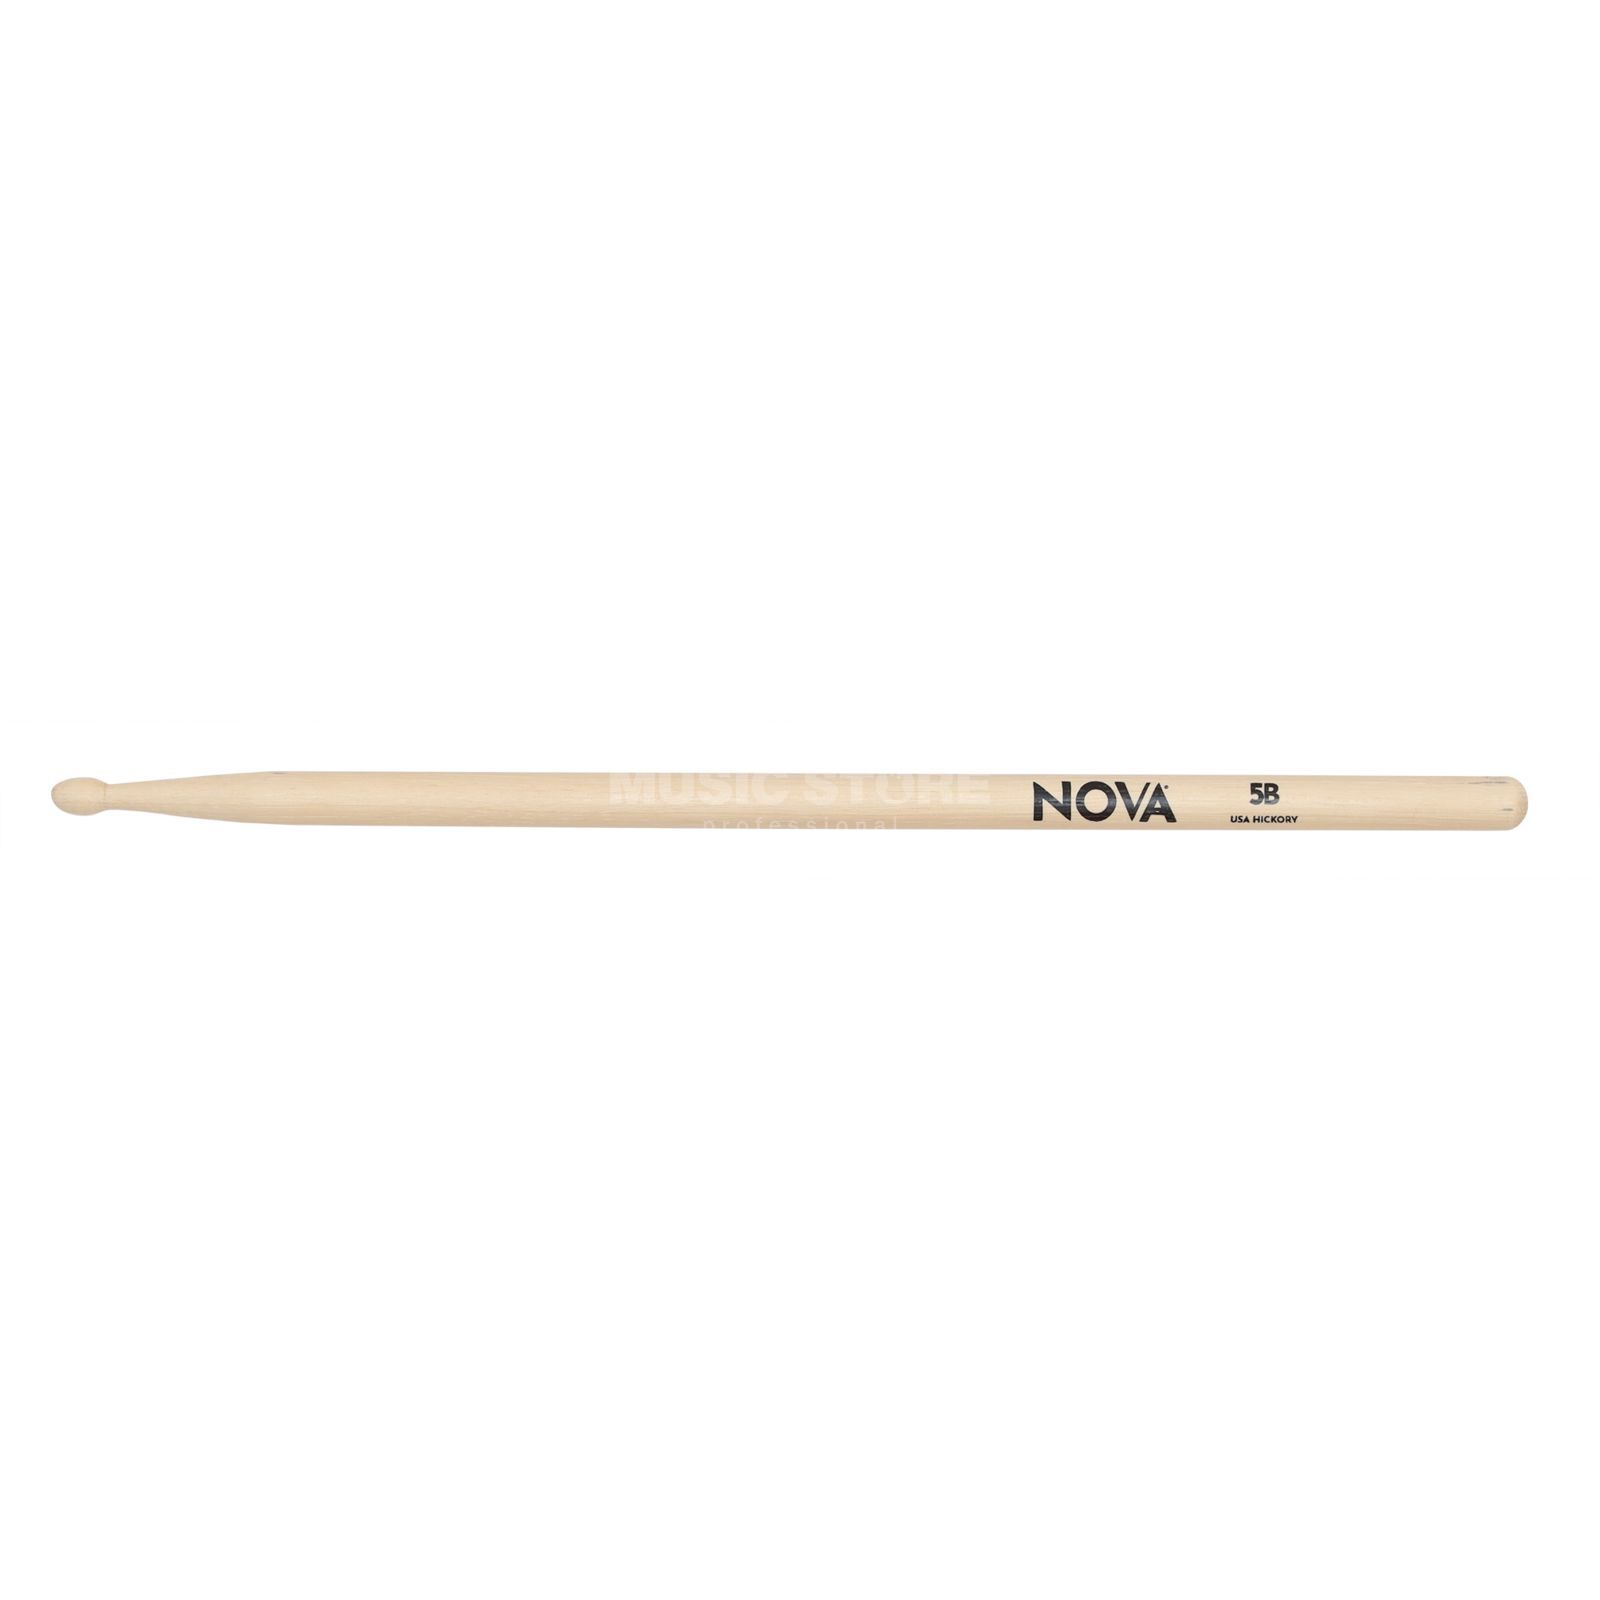 Vic-Firth Nova Drum Sticks 5B, Wood Tip Produktbild